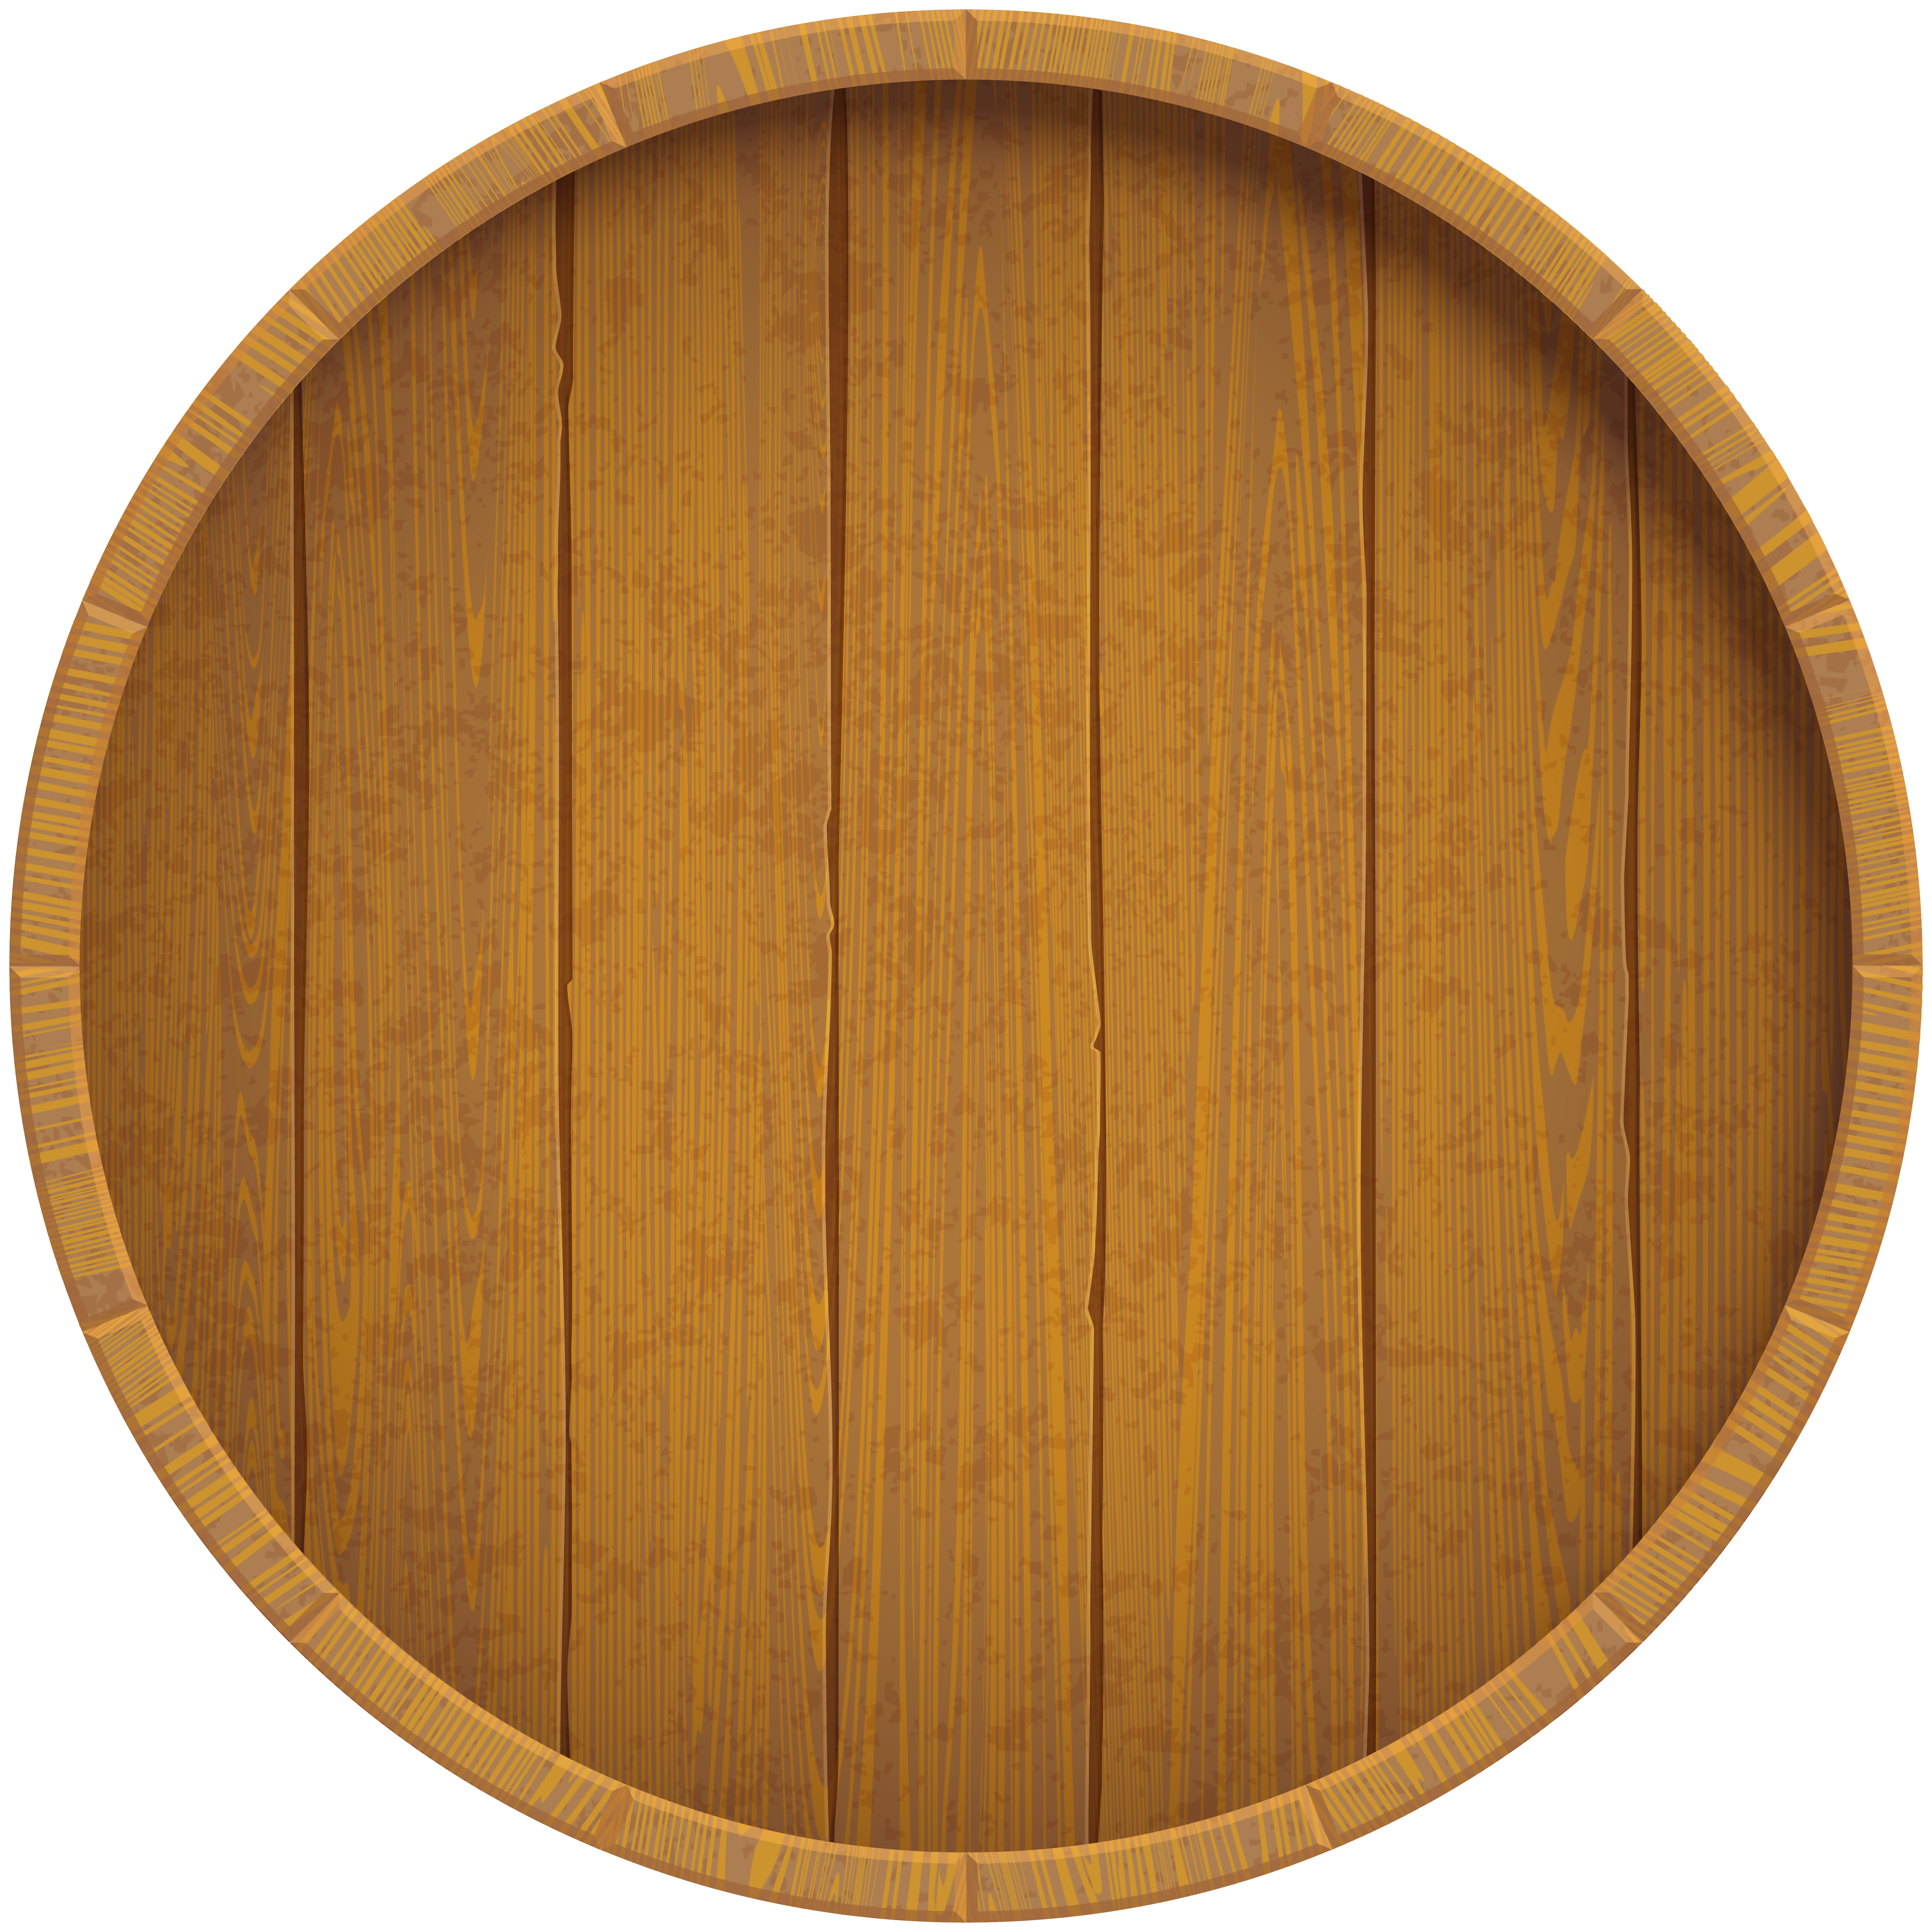 Wooden Beer Barrel Clip Art Image.